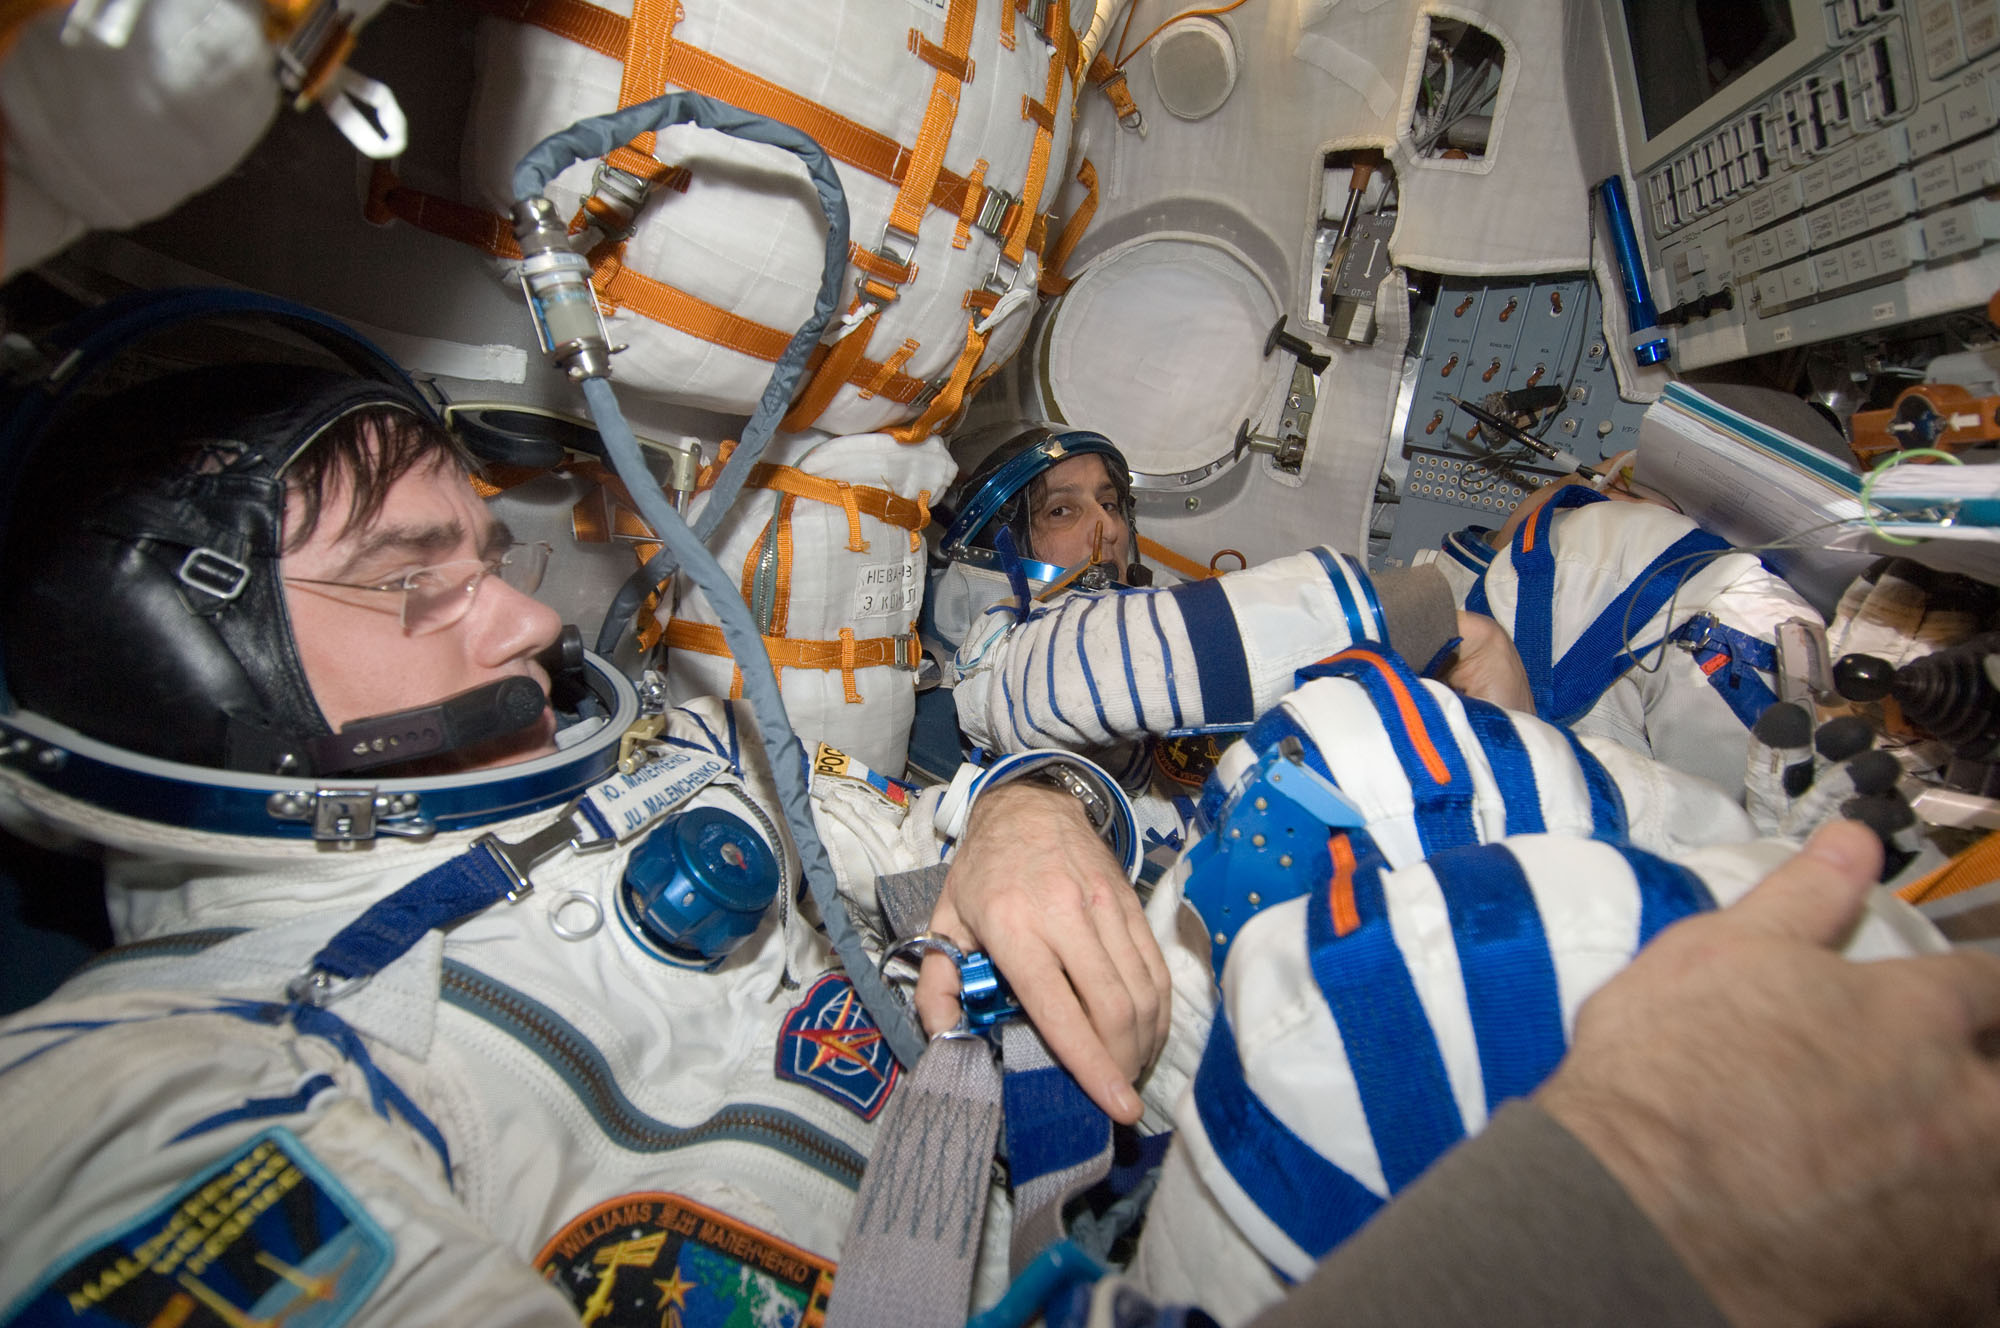 Expedition 33 Landing: Spacesuit Checks